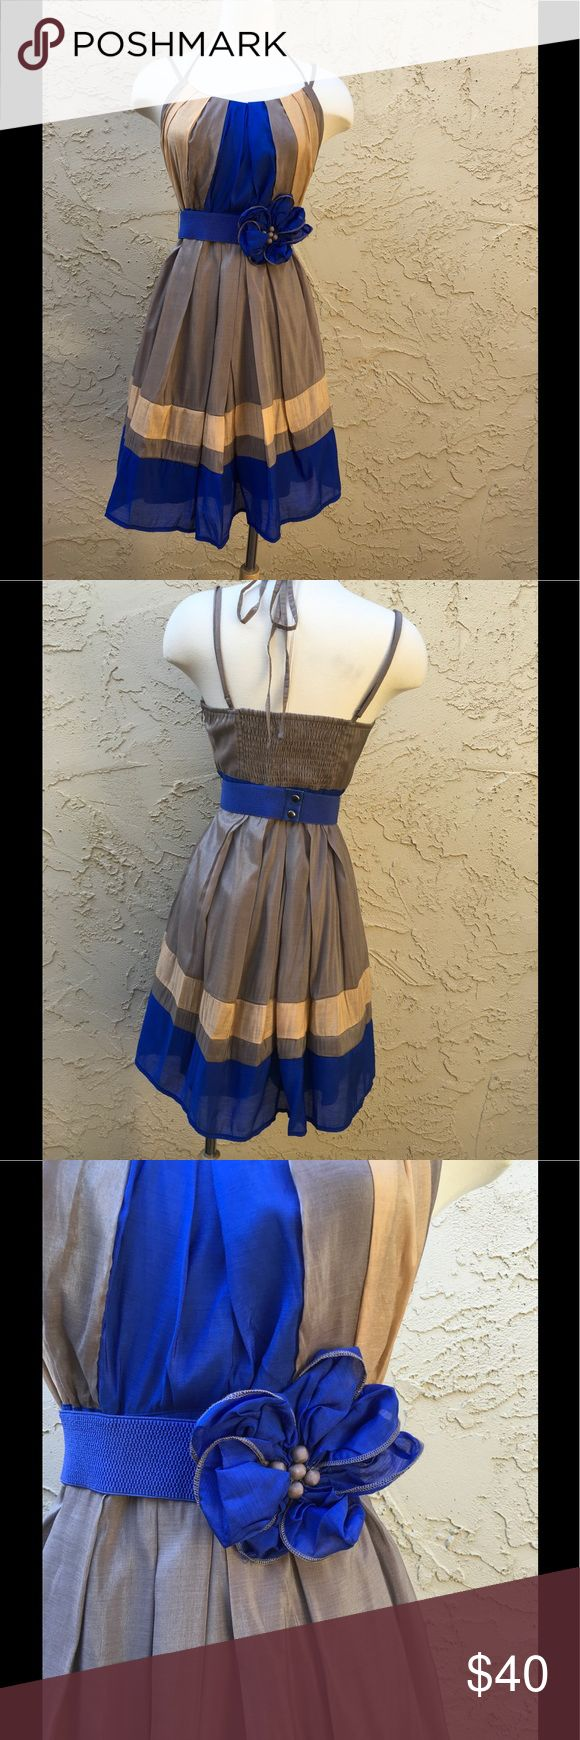 "🆕 Sleeveless Blue Tan Dress By Ryu Boutique 🌟🌟 Gorgeous Ryu Sleeveless New Dress. Adjustable Straps, Ties Back. Smocked Back For Good Support. Lightweight Fully Lined.Hidden Side Zipper. Elastic Belt With Center Fabric Rosette. 20% Cotton, 80% Polyester. Medium Measure, 16"" armpit to armpit, 14"" Waist, 27"" Length From Under armpit. Large Measure, 18"" armpit to armpit, 16"" waist, 28"" Length From under armpit.                               Color is Blue and Metallic Tan and Light Peach…"